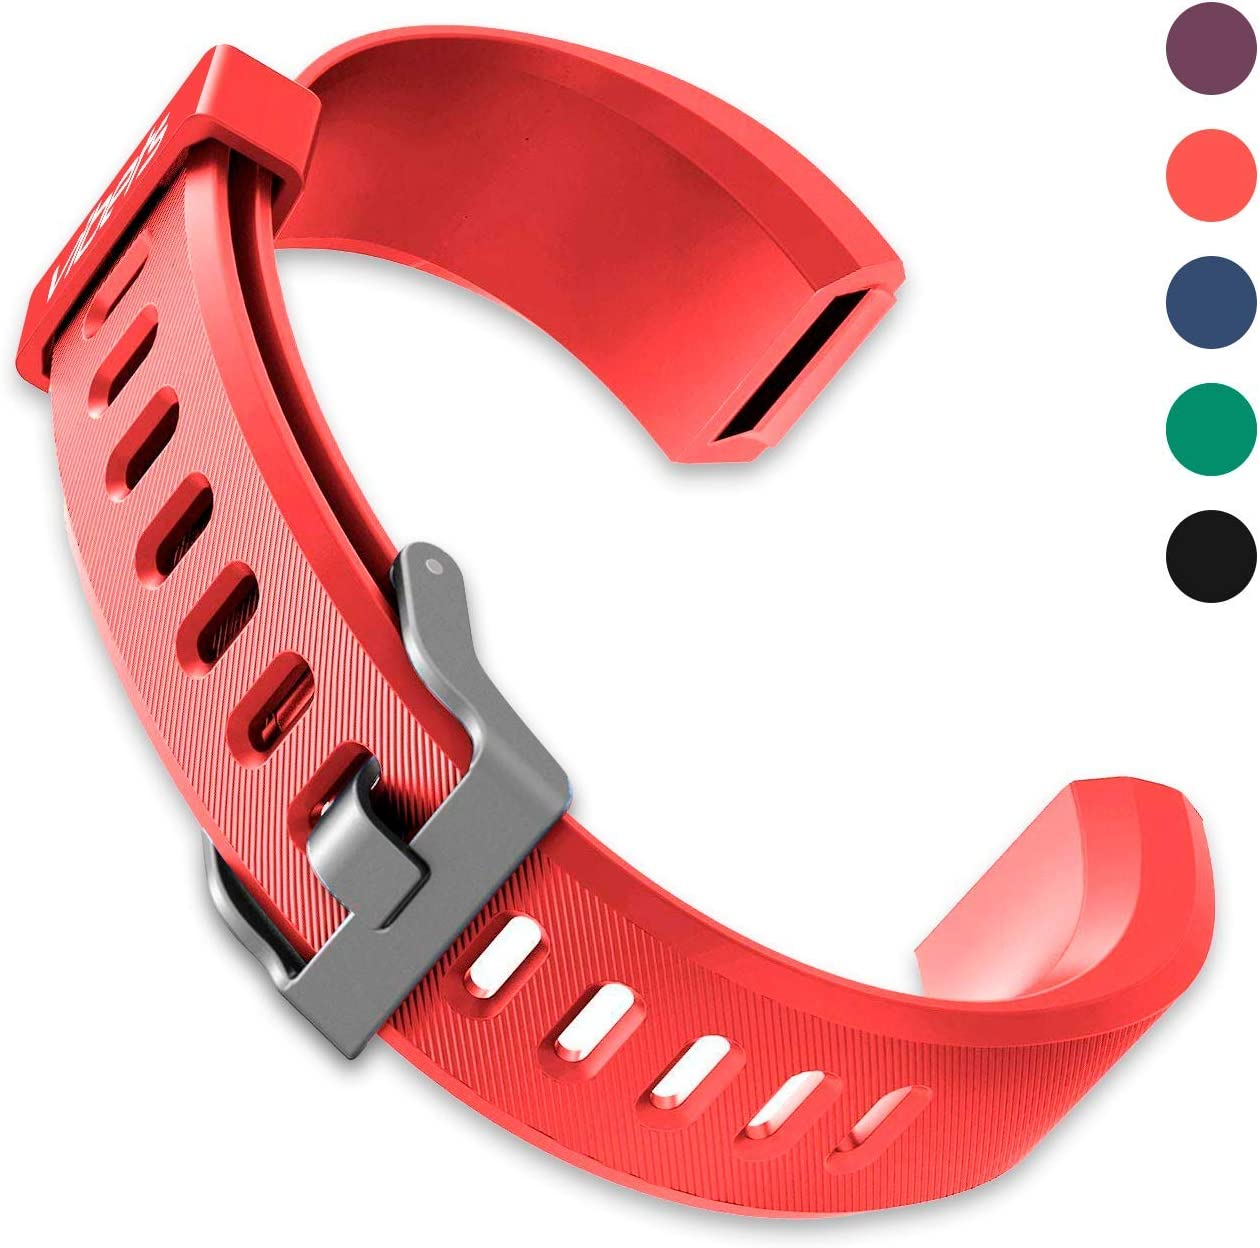 Vibets Pulse Original Replacement Band for Fitness Tracker ID115PlusHR (Cool Red)